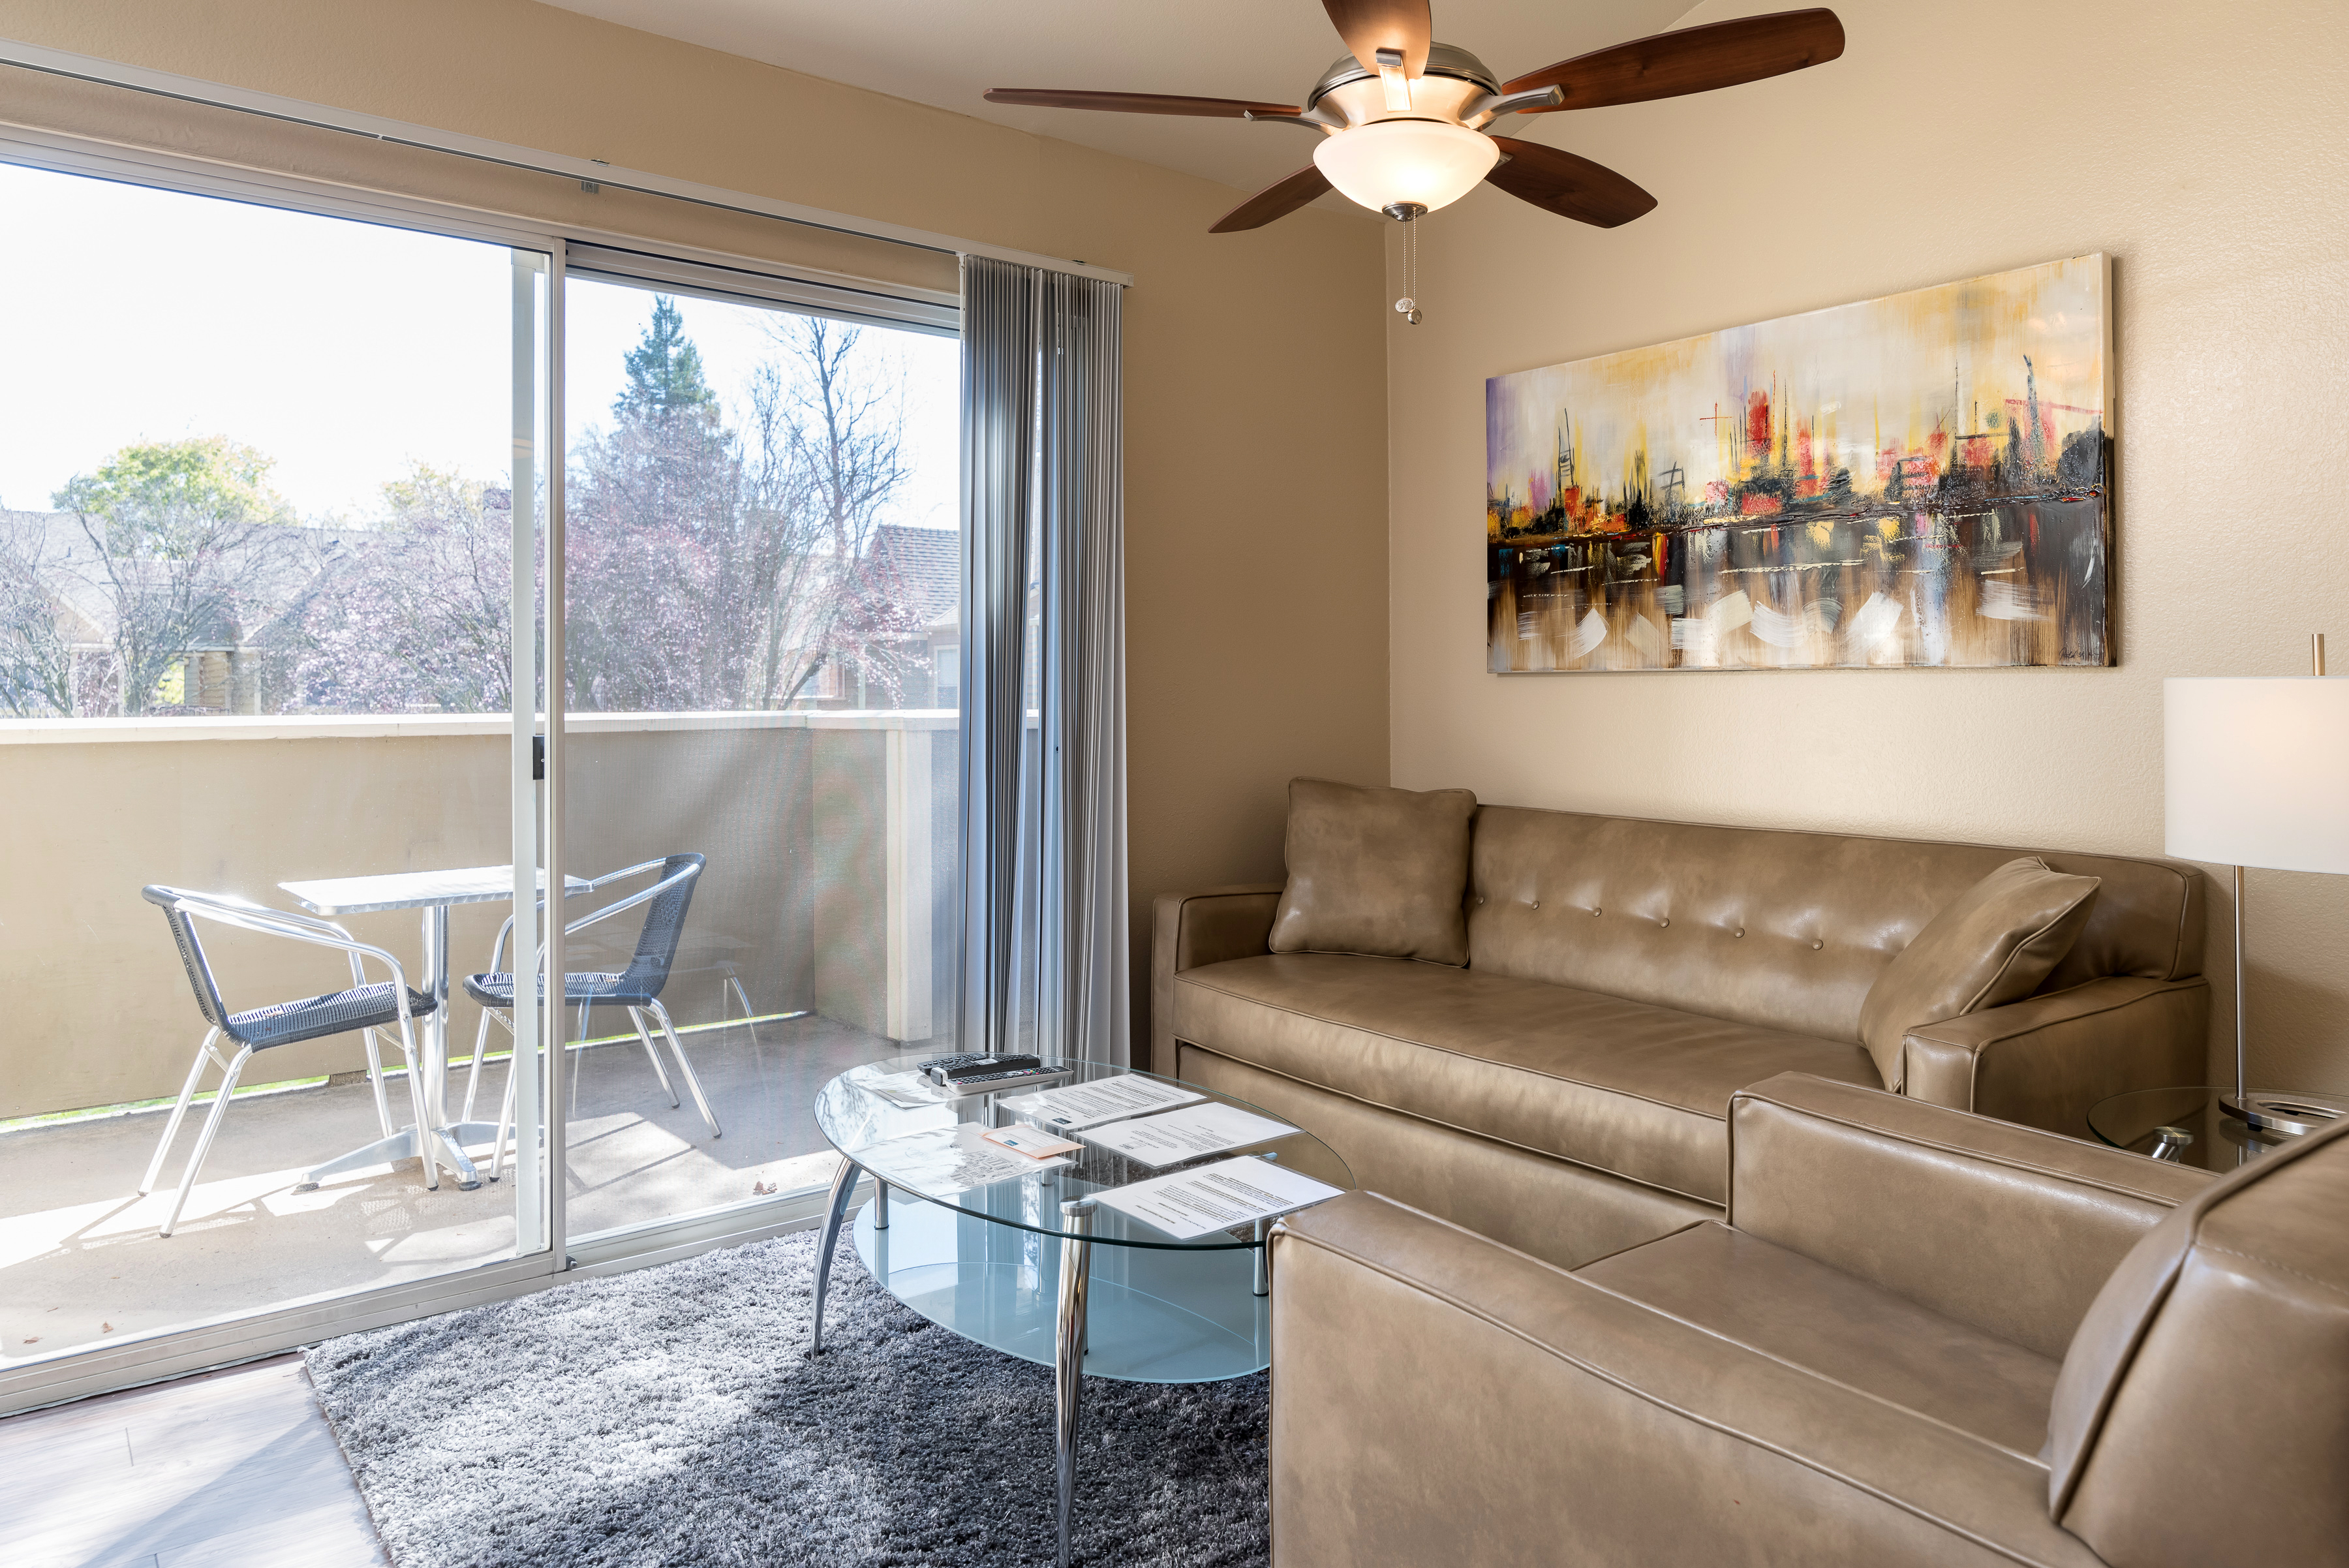 image 3 furnished 1 bedroom Apartment for rent in San Ramon, Contra Costa County